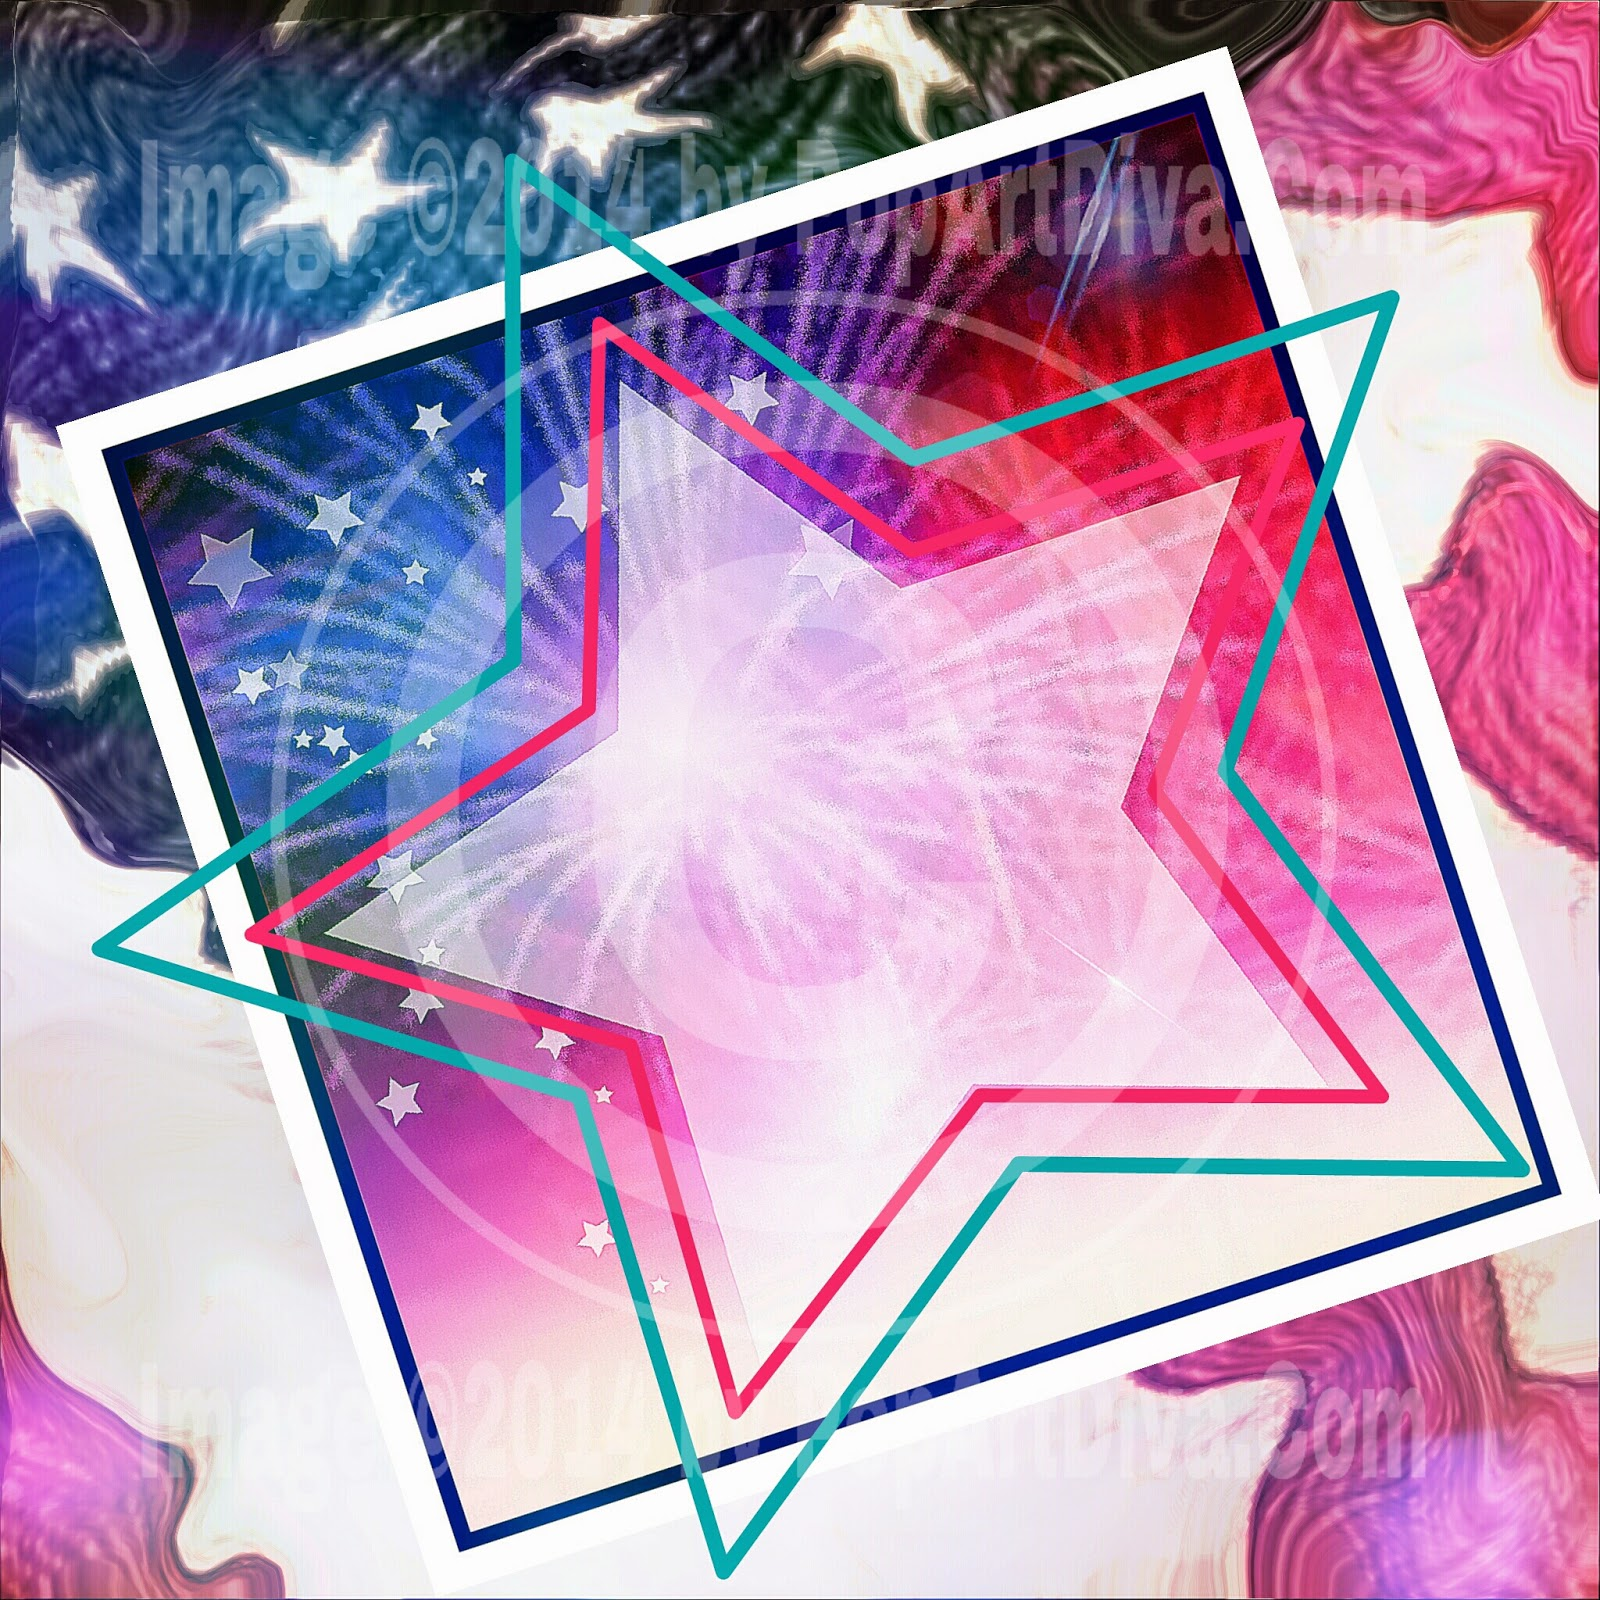 http://store.payloadz.com/details/2081175-photos-and-images-clip-art-patriotic-star-web-graphic-1.html